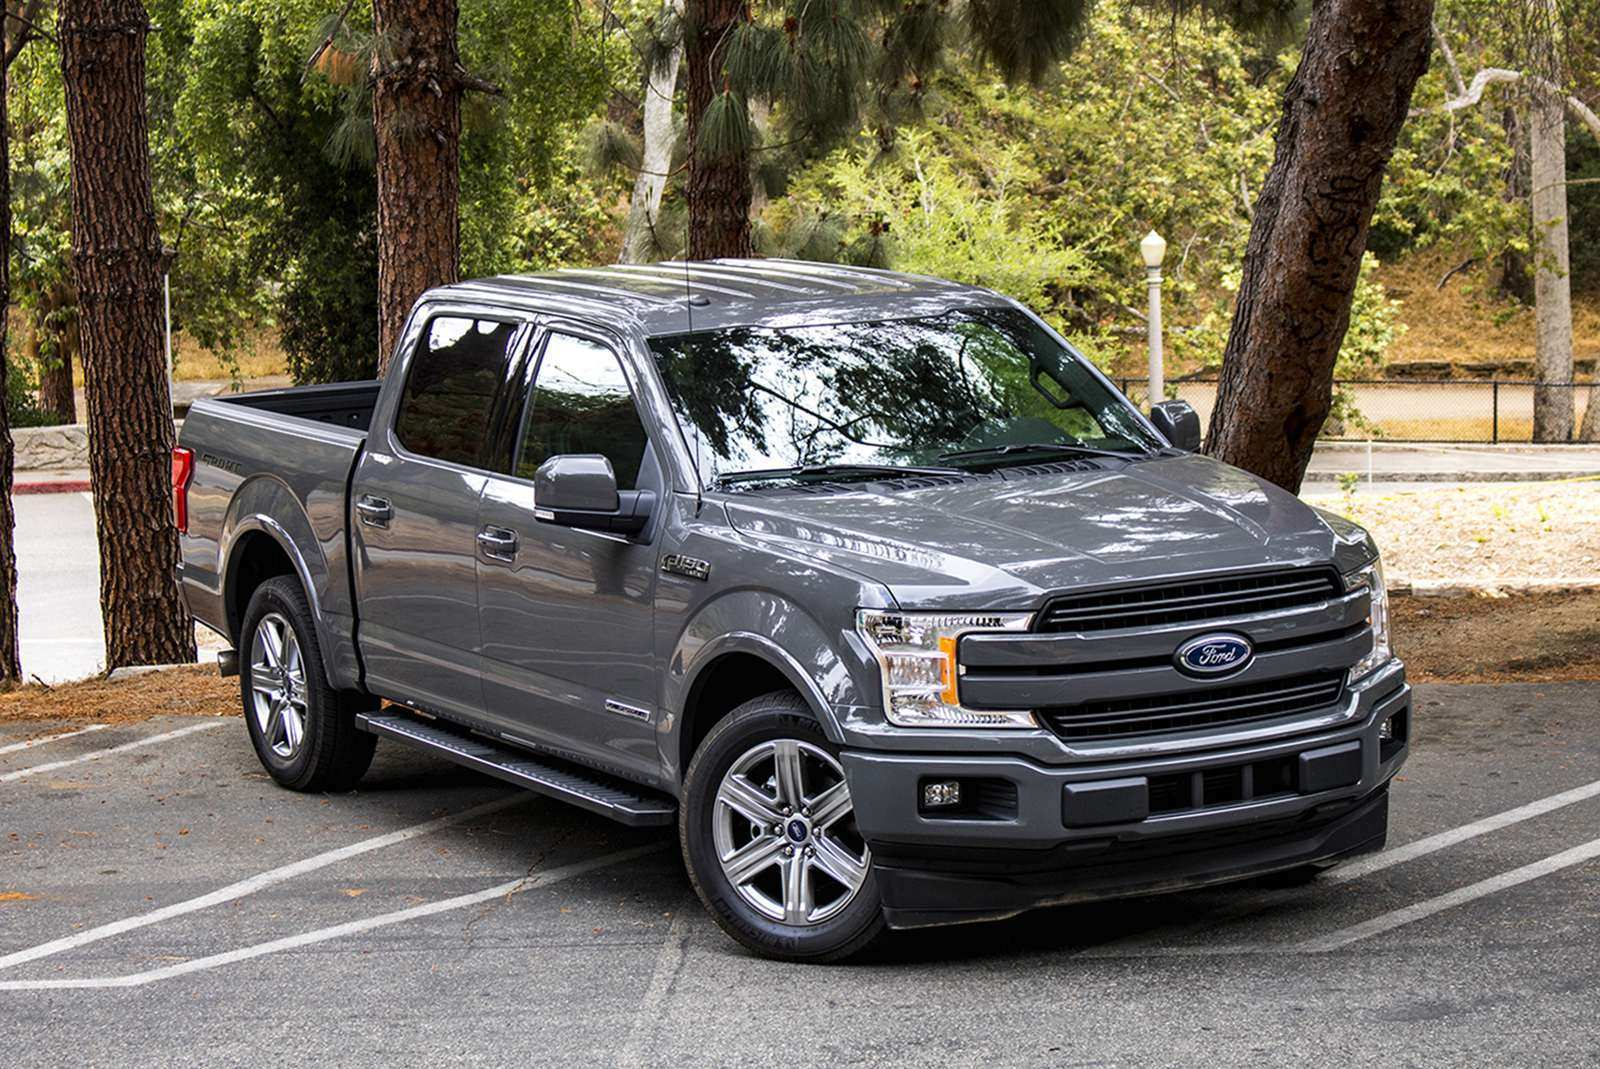 28 Gallery of 2019 Ford Half Ton Diesel Rumors by 2019 Ford Half Ton Diesel